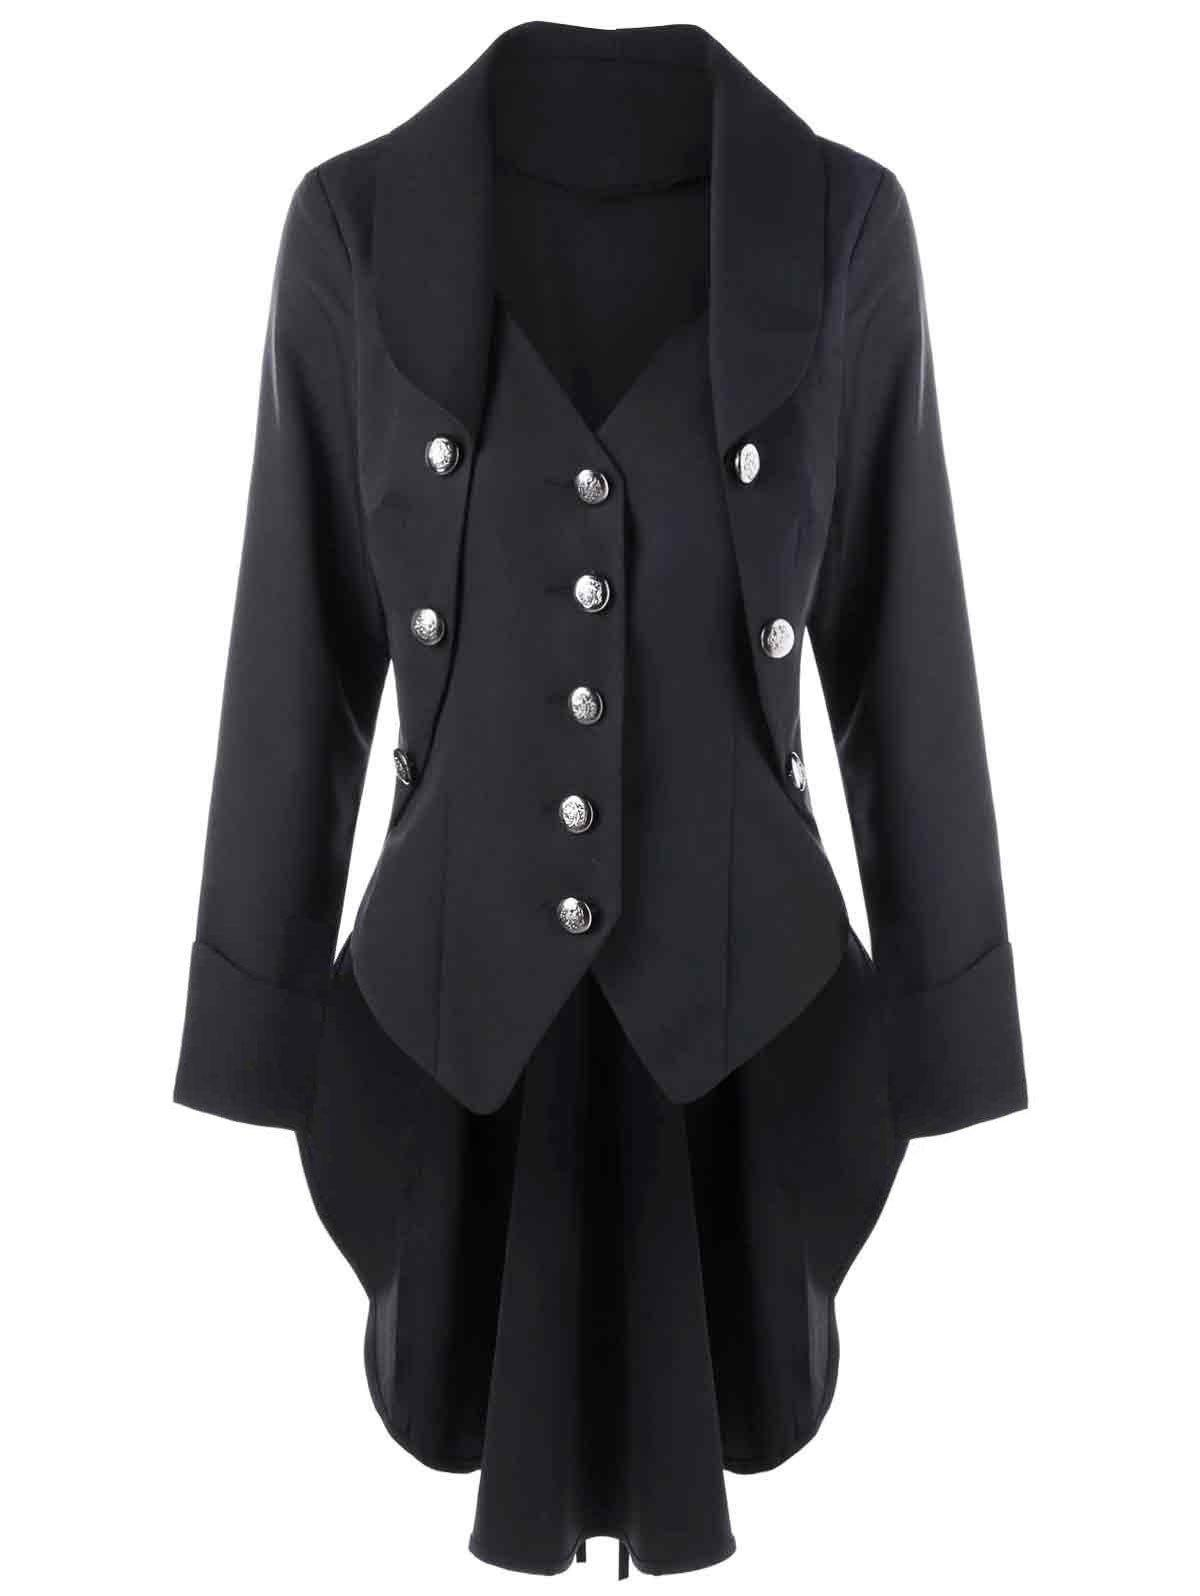 Button Up Slim Vintage TailcoatWOMEN<br><br>Size: L; Color: BLACK; Clothes Type: Trench; Material: Polyester; Type: Slim; Shirt Length: Long; Sleeve Length: Full; Collar: Turn-down Collar; Pattern Type: Solid; Style: Vintage; Season: Fall,Spring; Weight: 0.4500kg; Package Contents: 1 x Tailcoat;